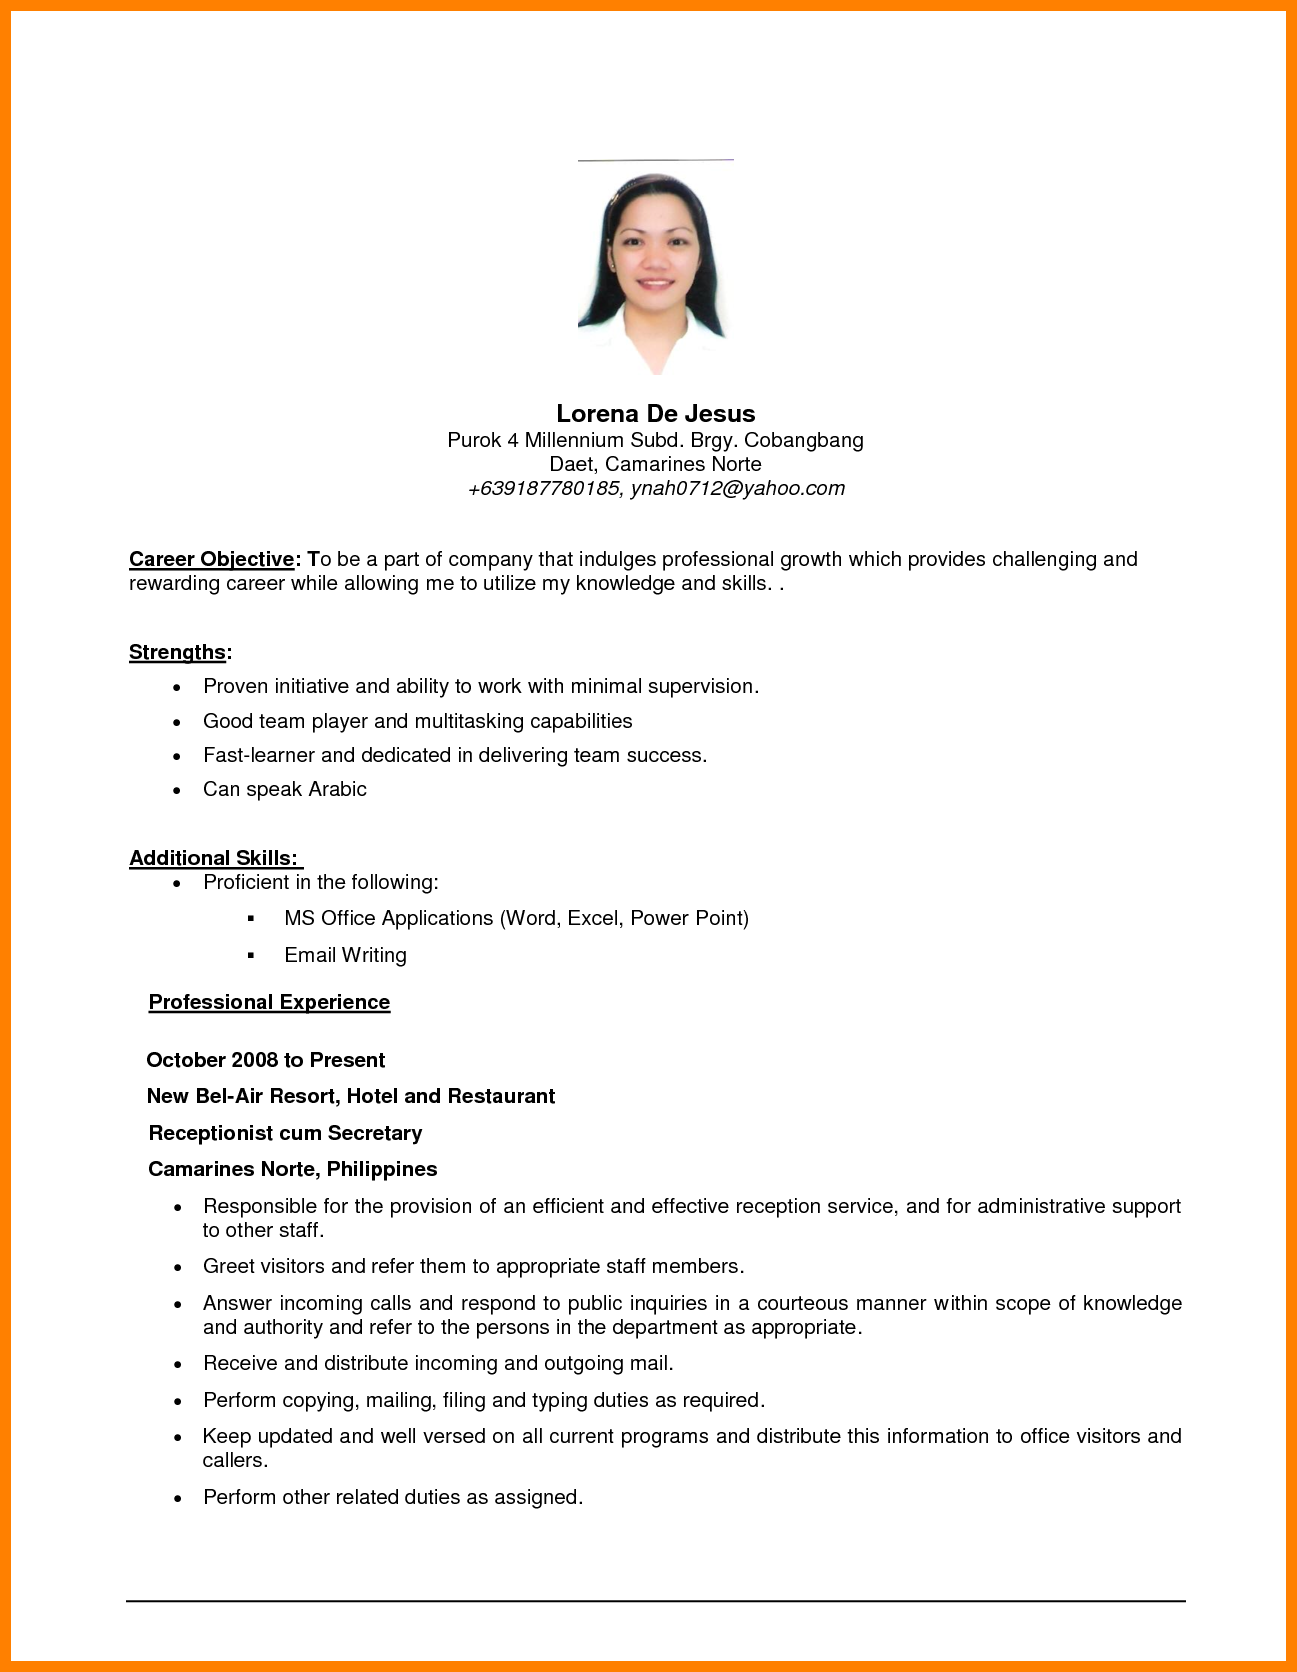 Samples Of Resume Objectives Resume Objective Sample Computer Skills Examples For Example Your